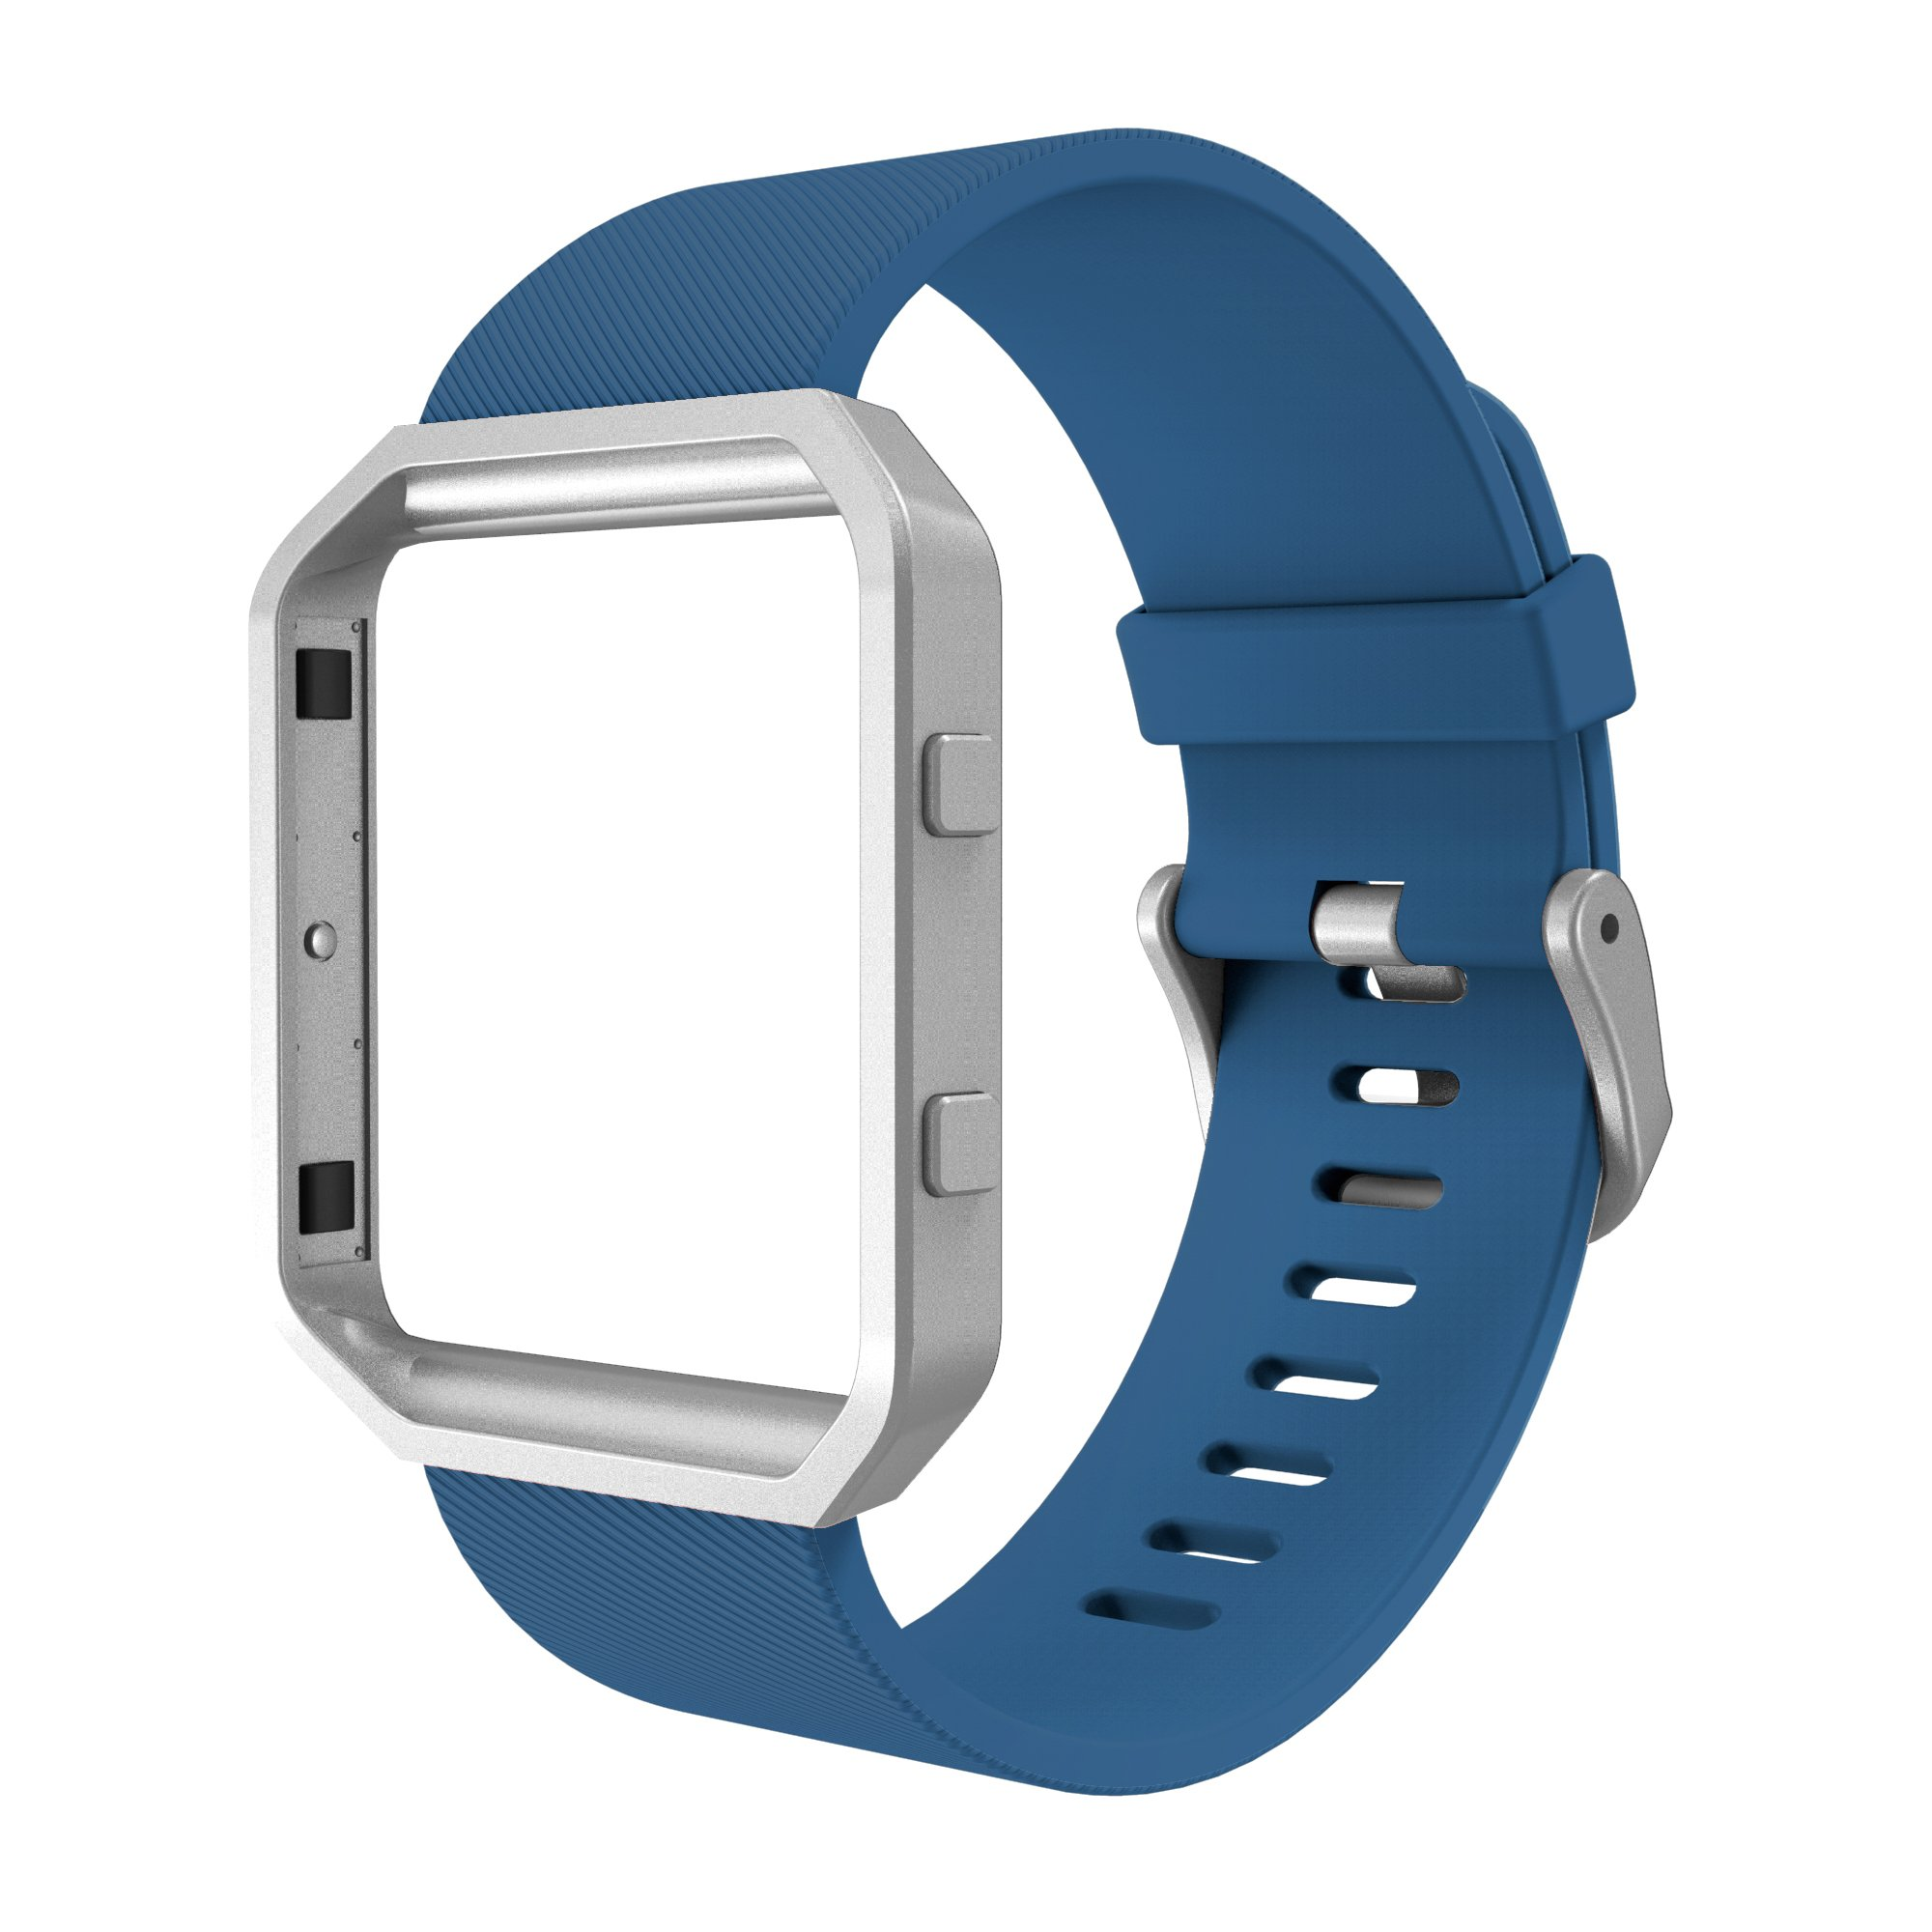 Simpeak for Fitbit Blaze Band with Frame, Replacement Silicone Sport Band Strap with Case for Fitbit Blaze Smart Watch product image